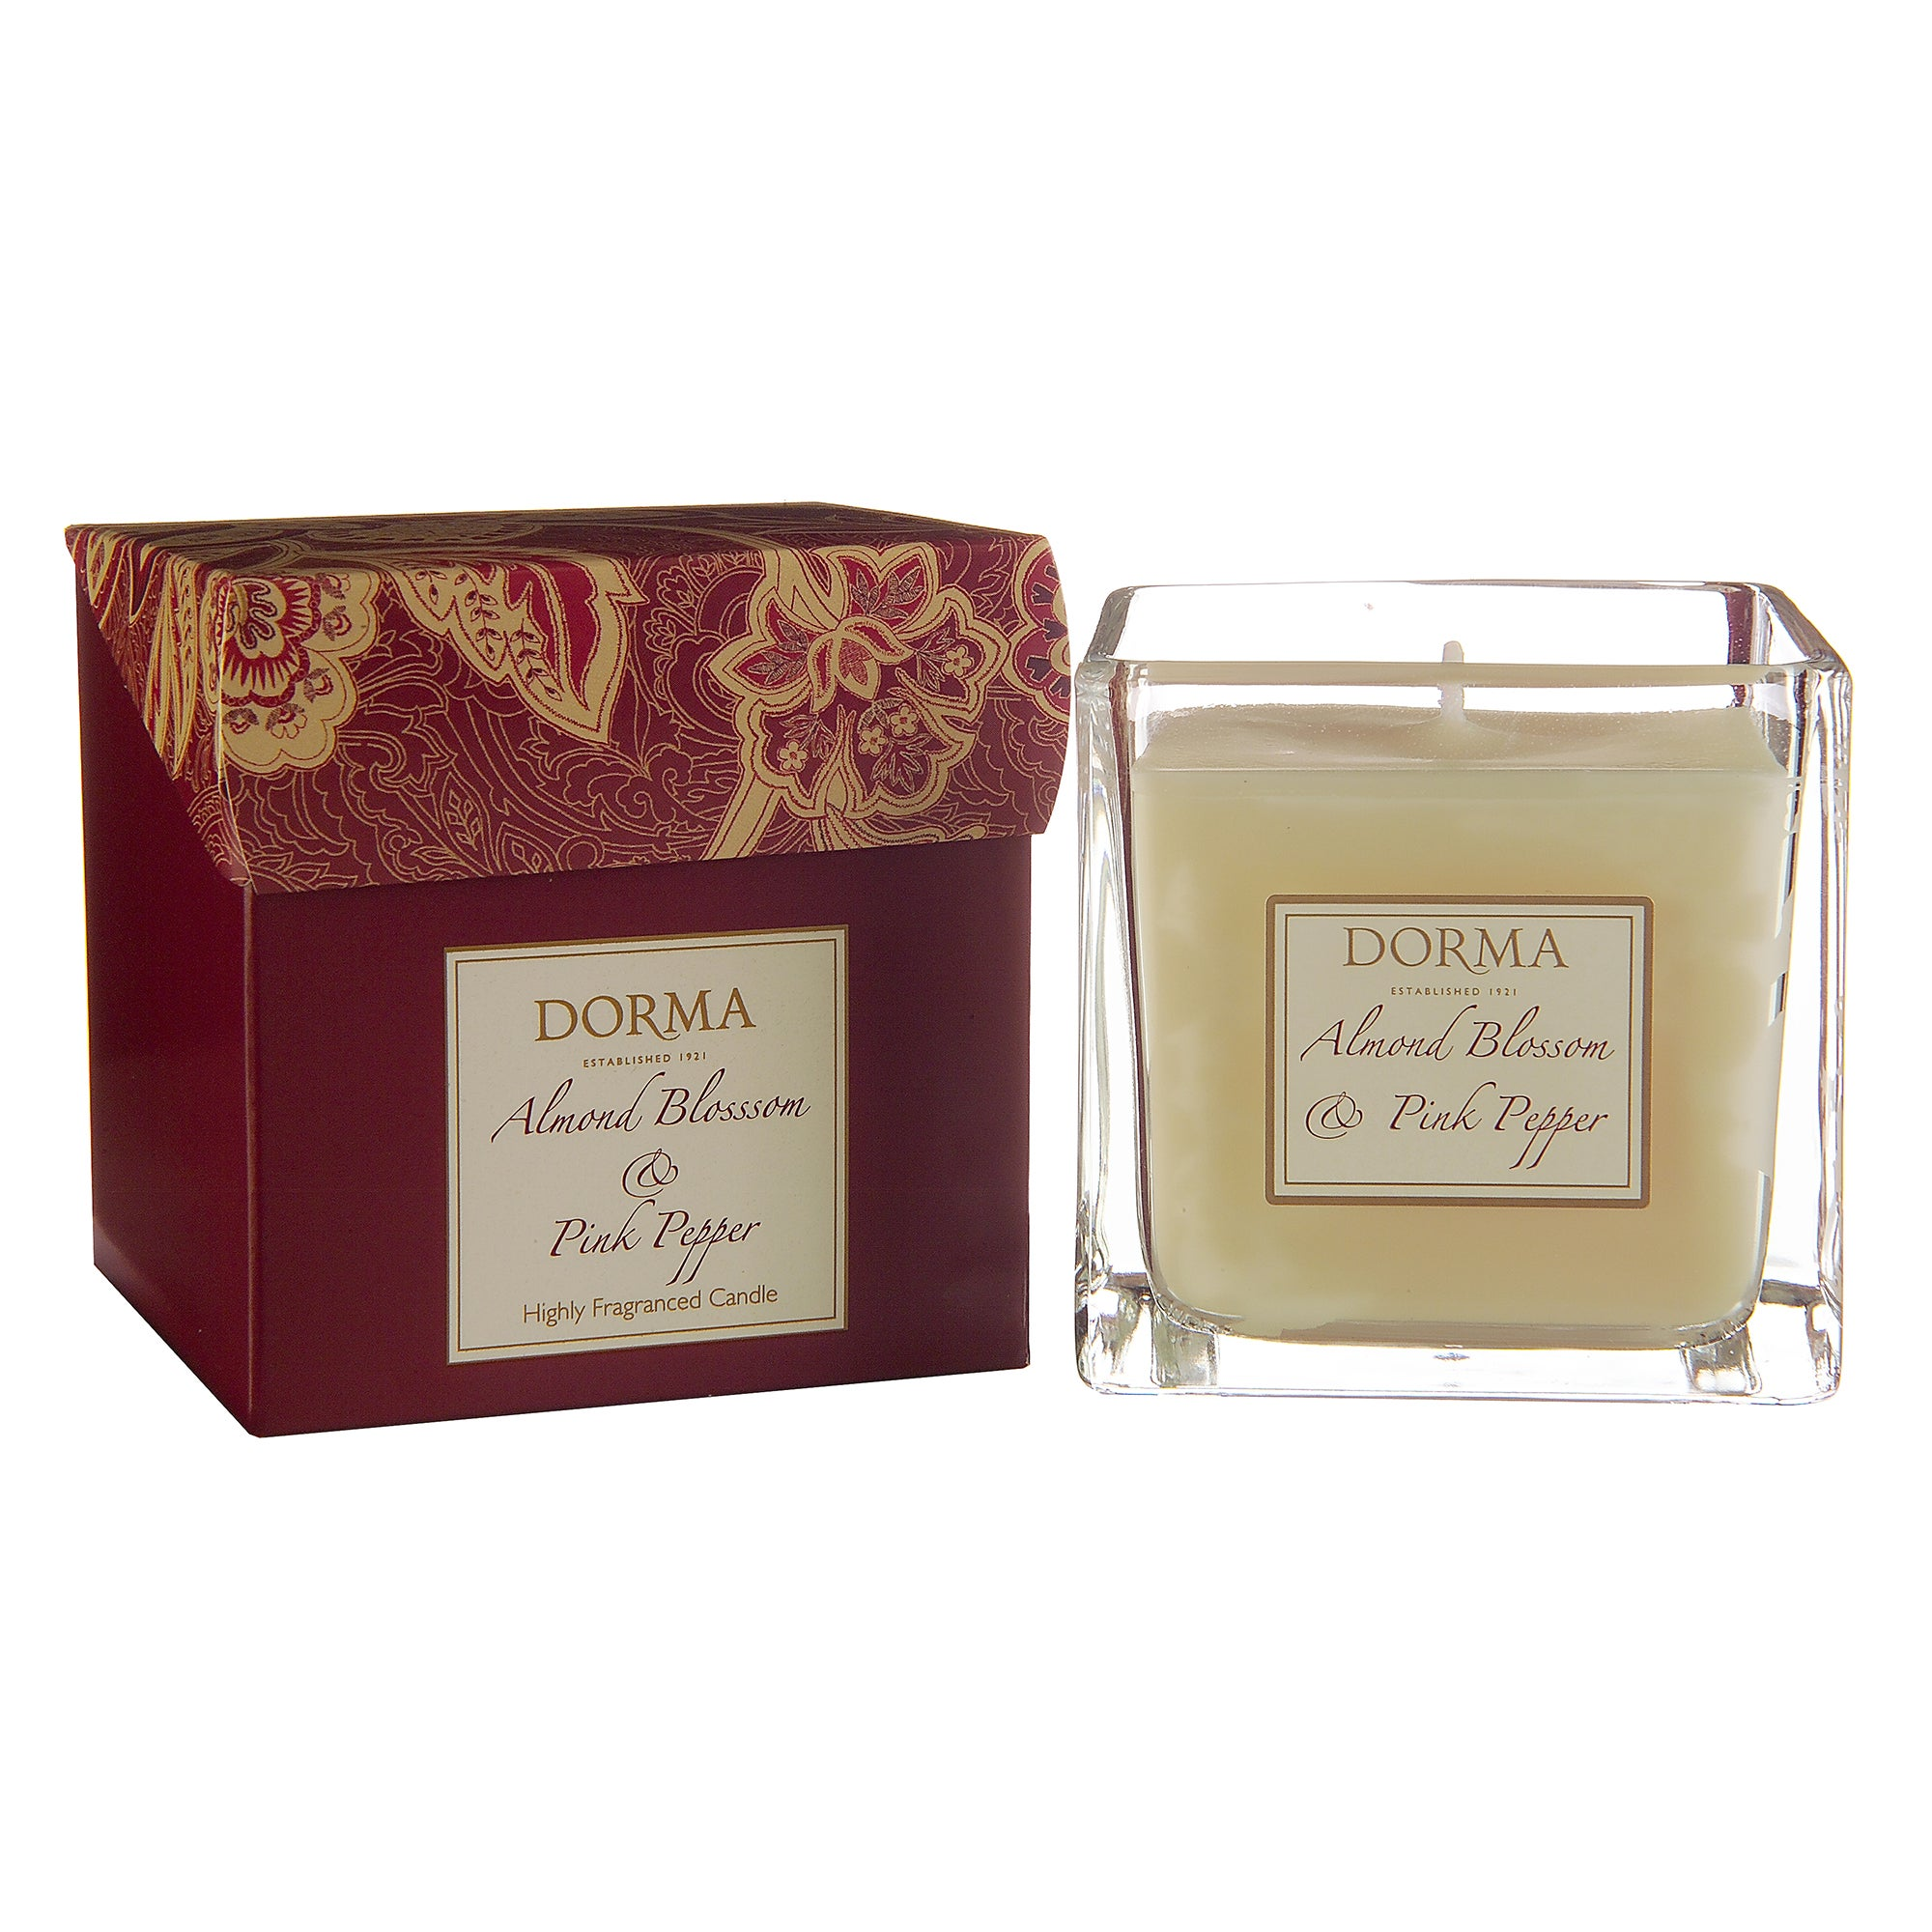 Dorma Almond Blossom and Pink Pepper Wax Filled Glass Candle